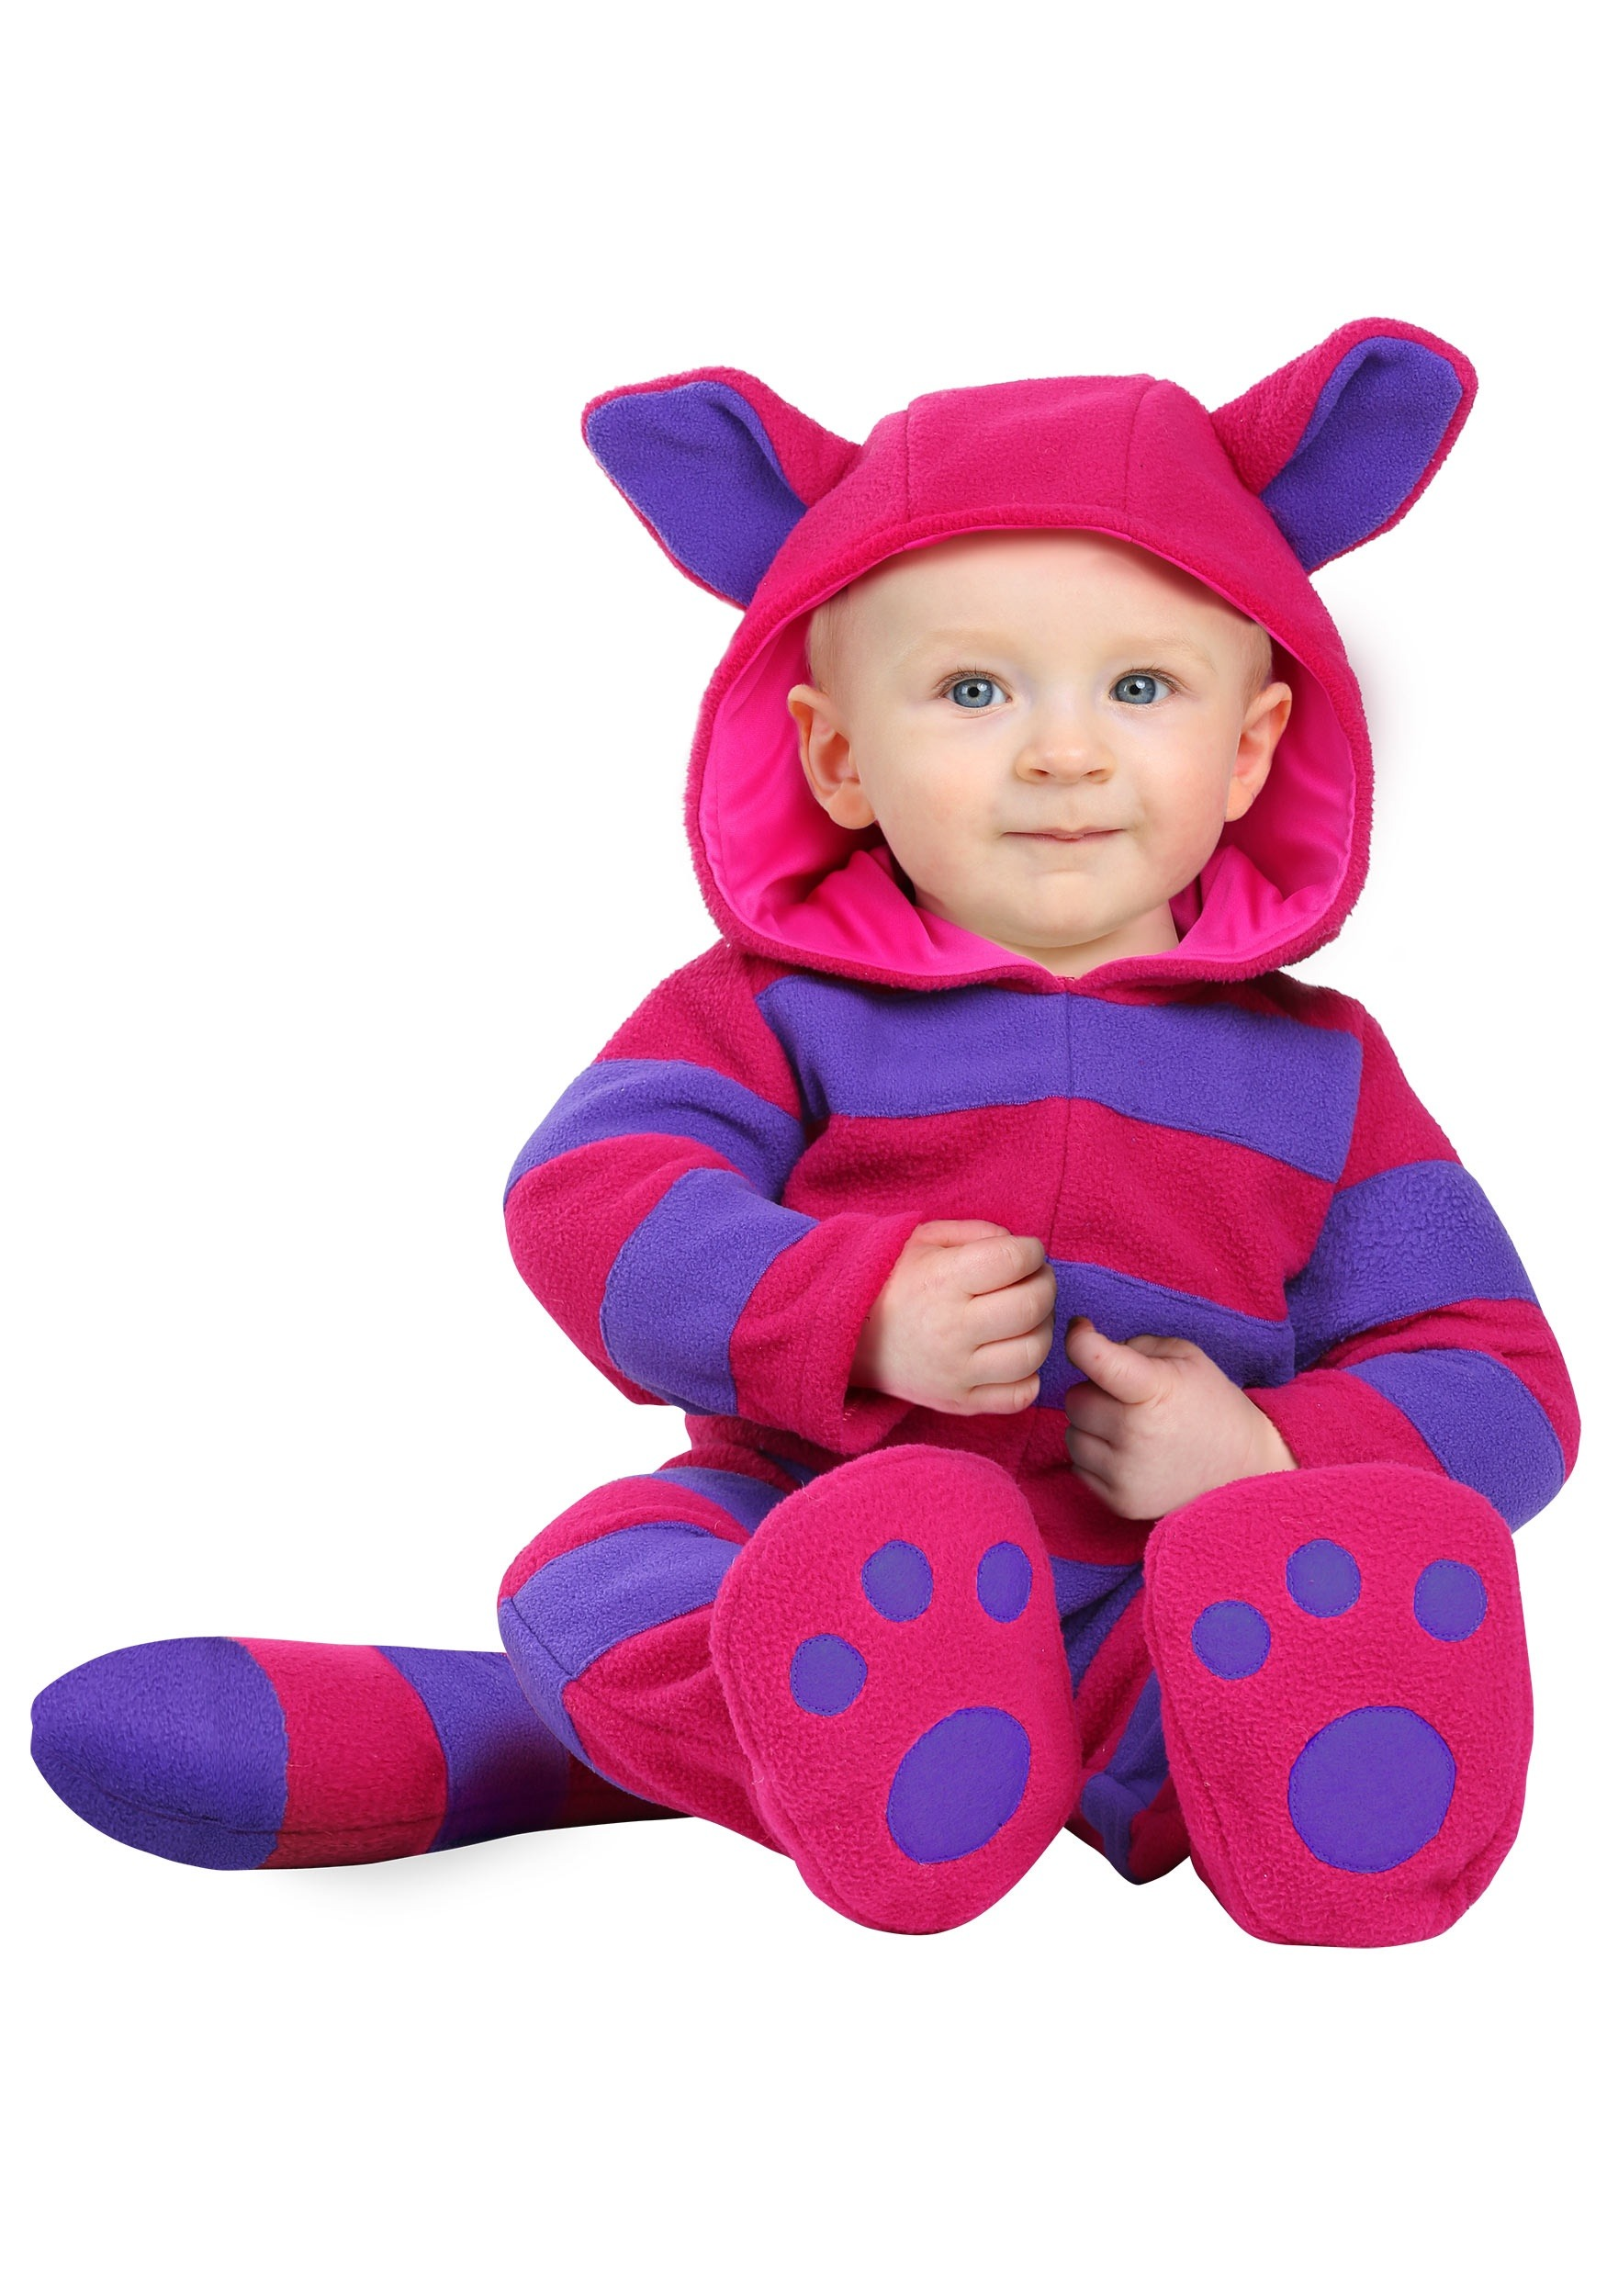 Cheshire Cat Costume For Infants  sc 1 st  Fun.com & Cheshire Cat Infant Costume For Baby